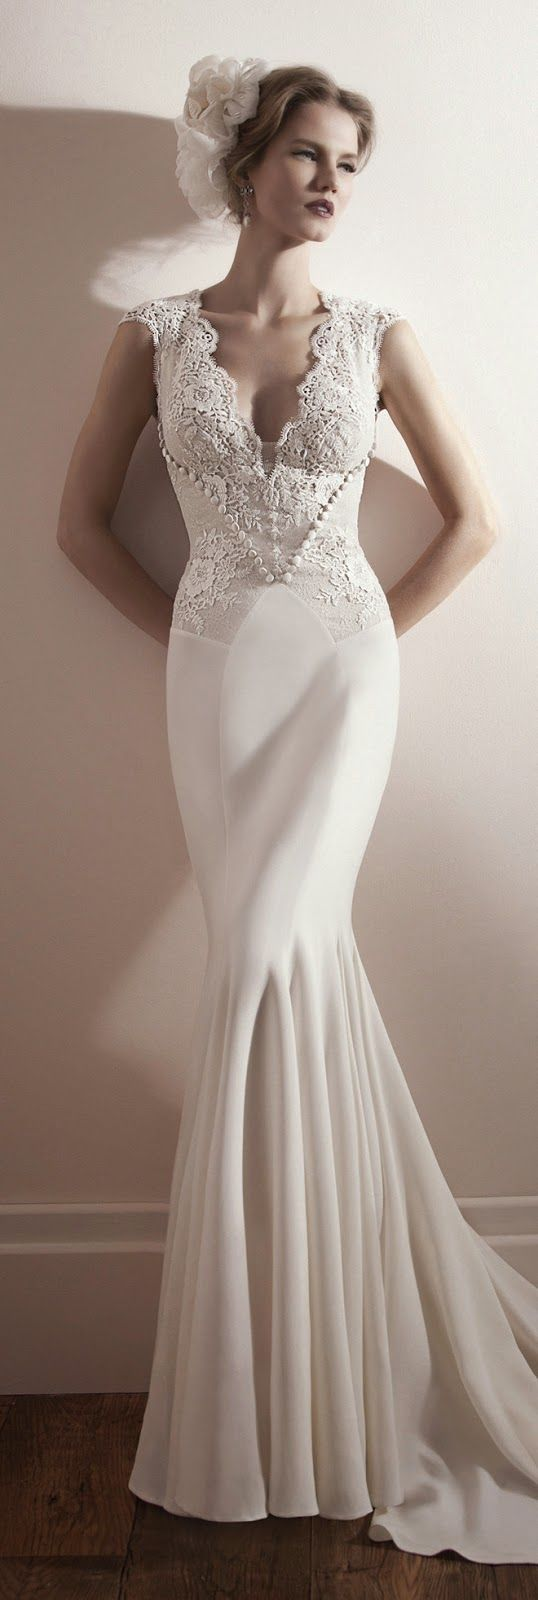 Lihi Hod 2013 Bridal Collection | bellethemagazine.com: